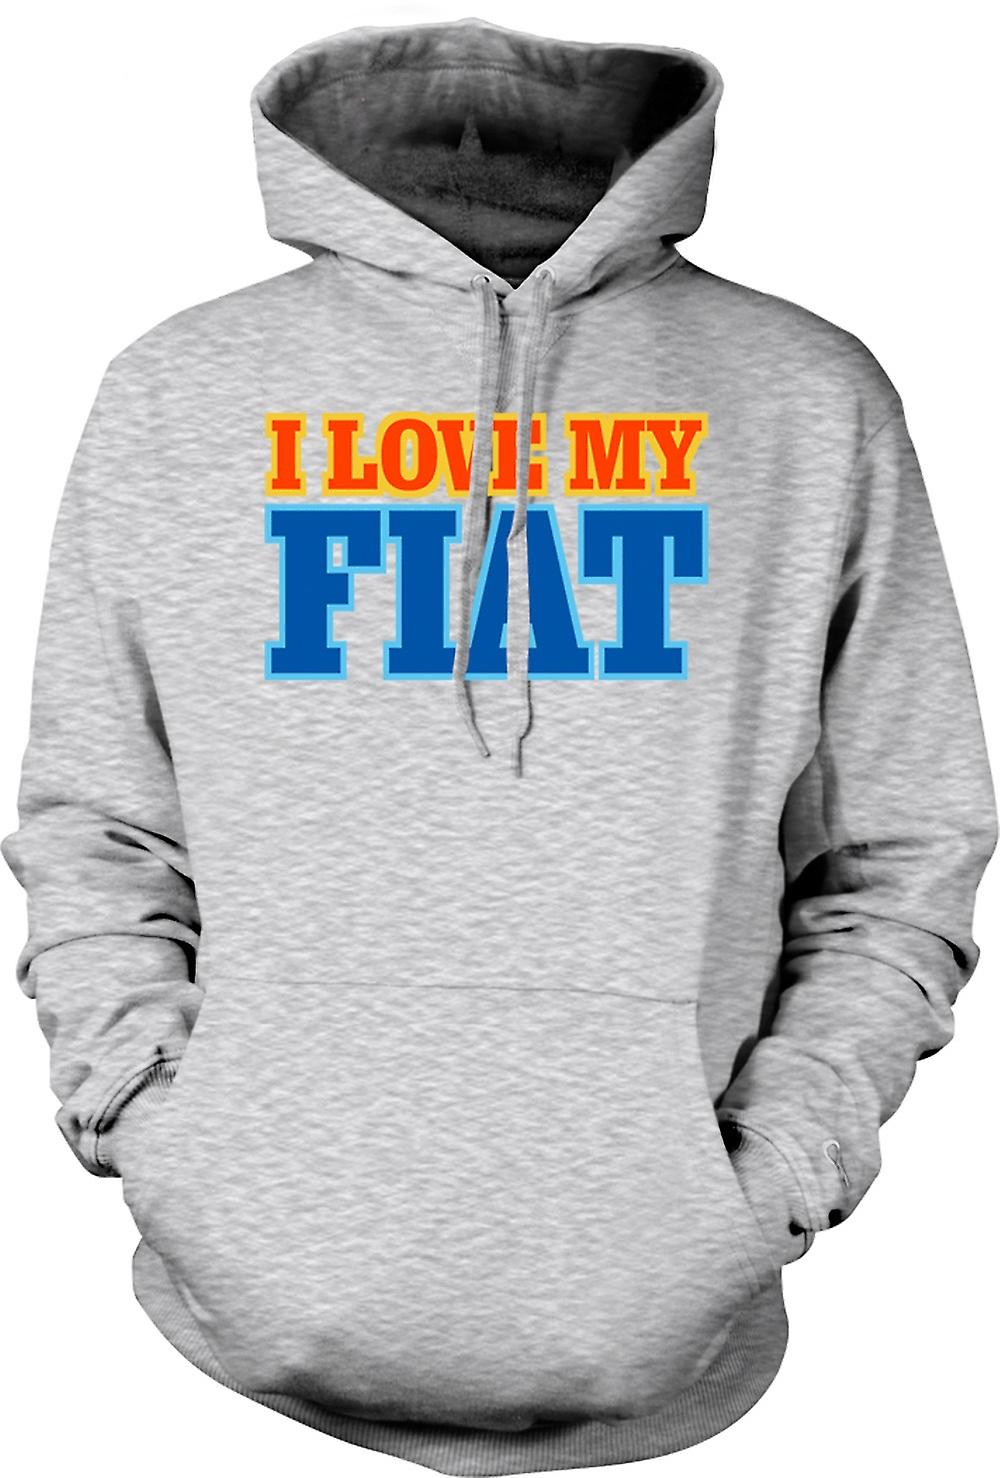 Mens Hoodie - I Love My Fiat - Car Enthusiast